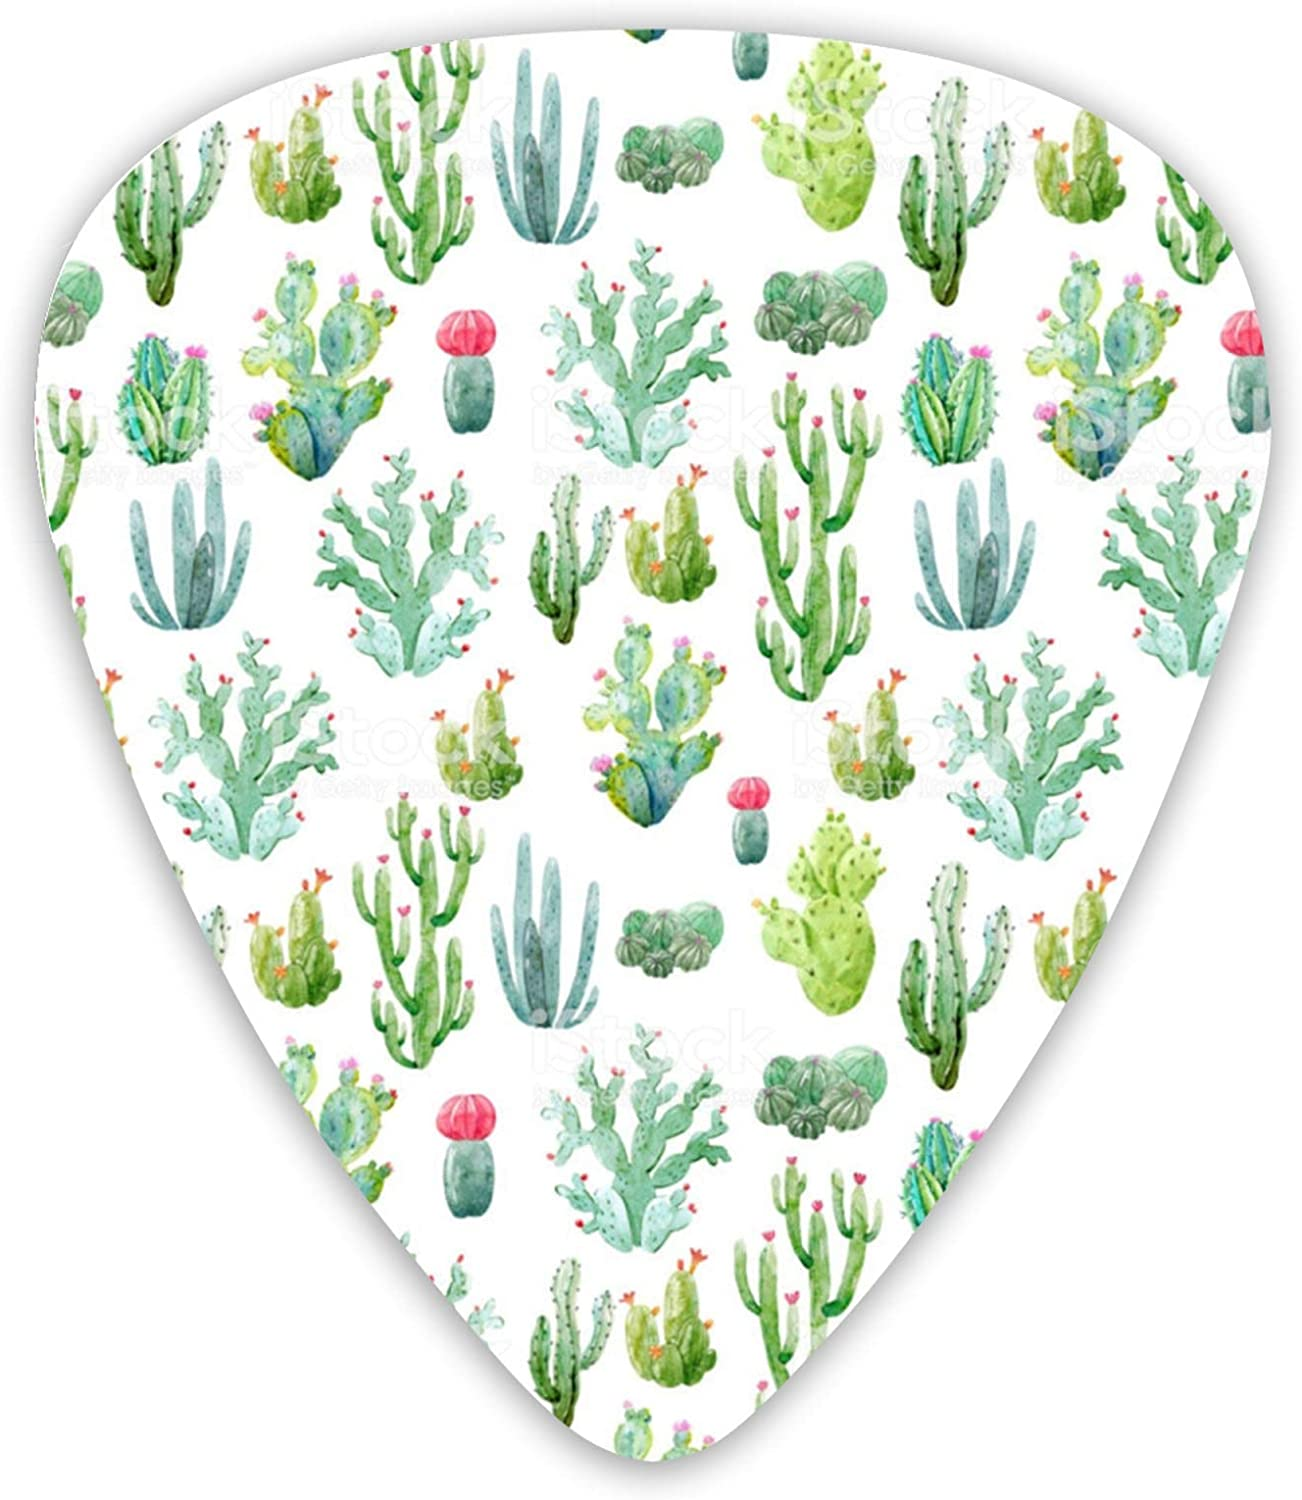 Cactus 55% OFF 12 Pack Guitar Picks Chicago Mall Classical for Acou Electric